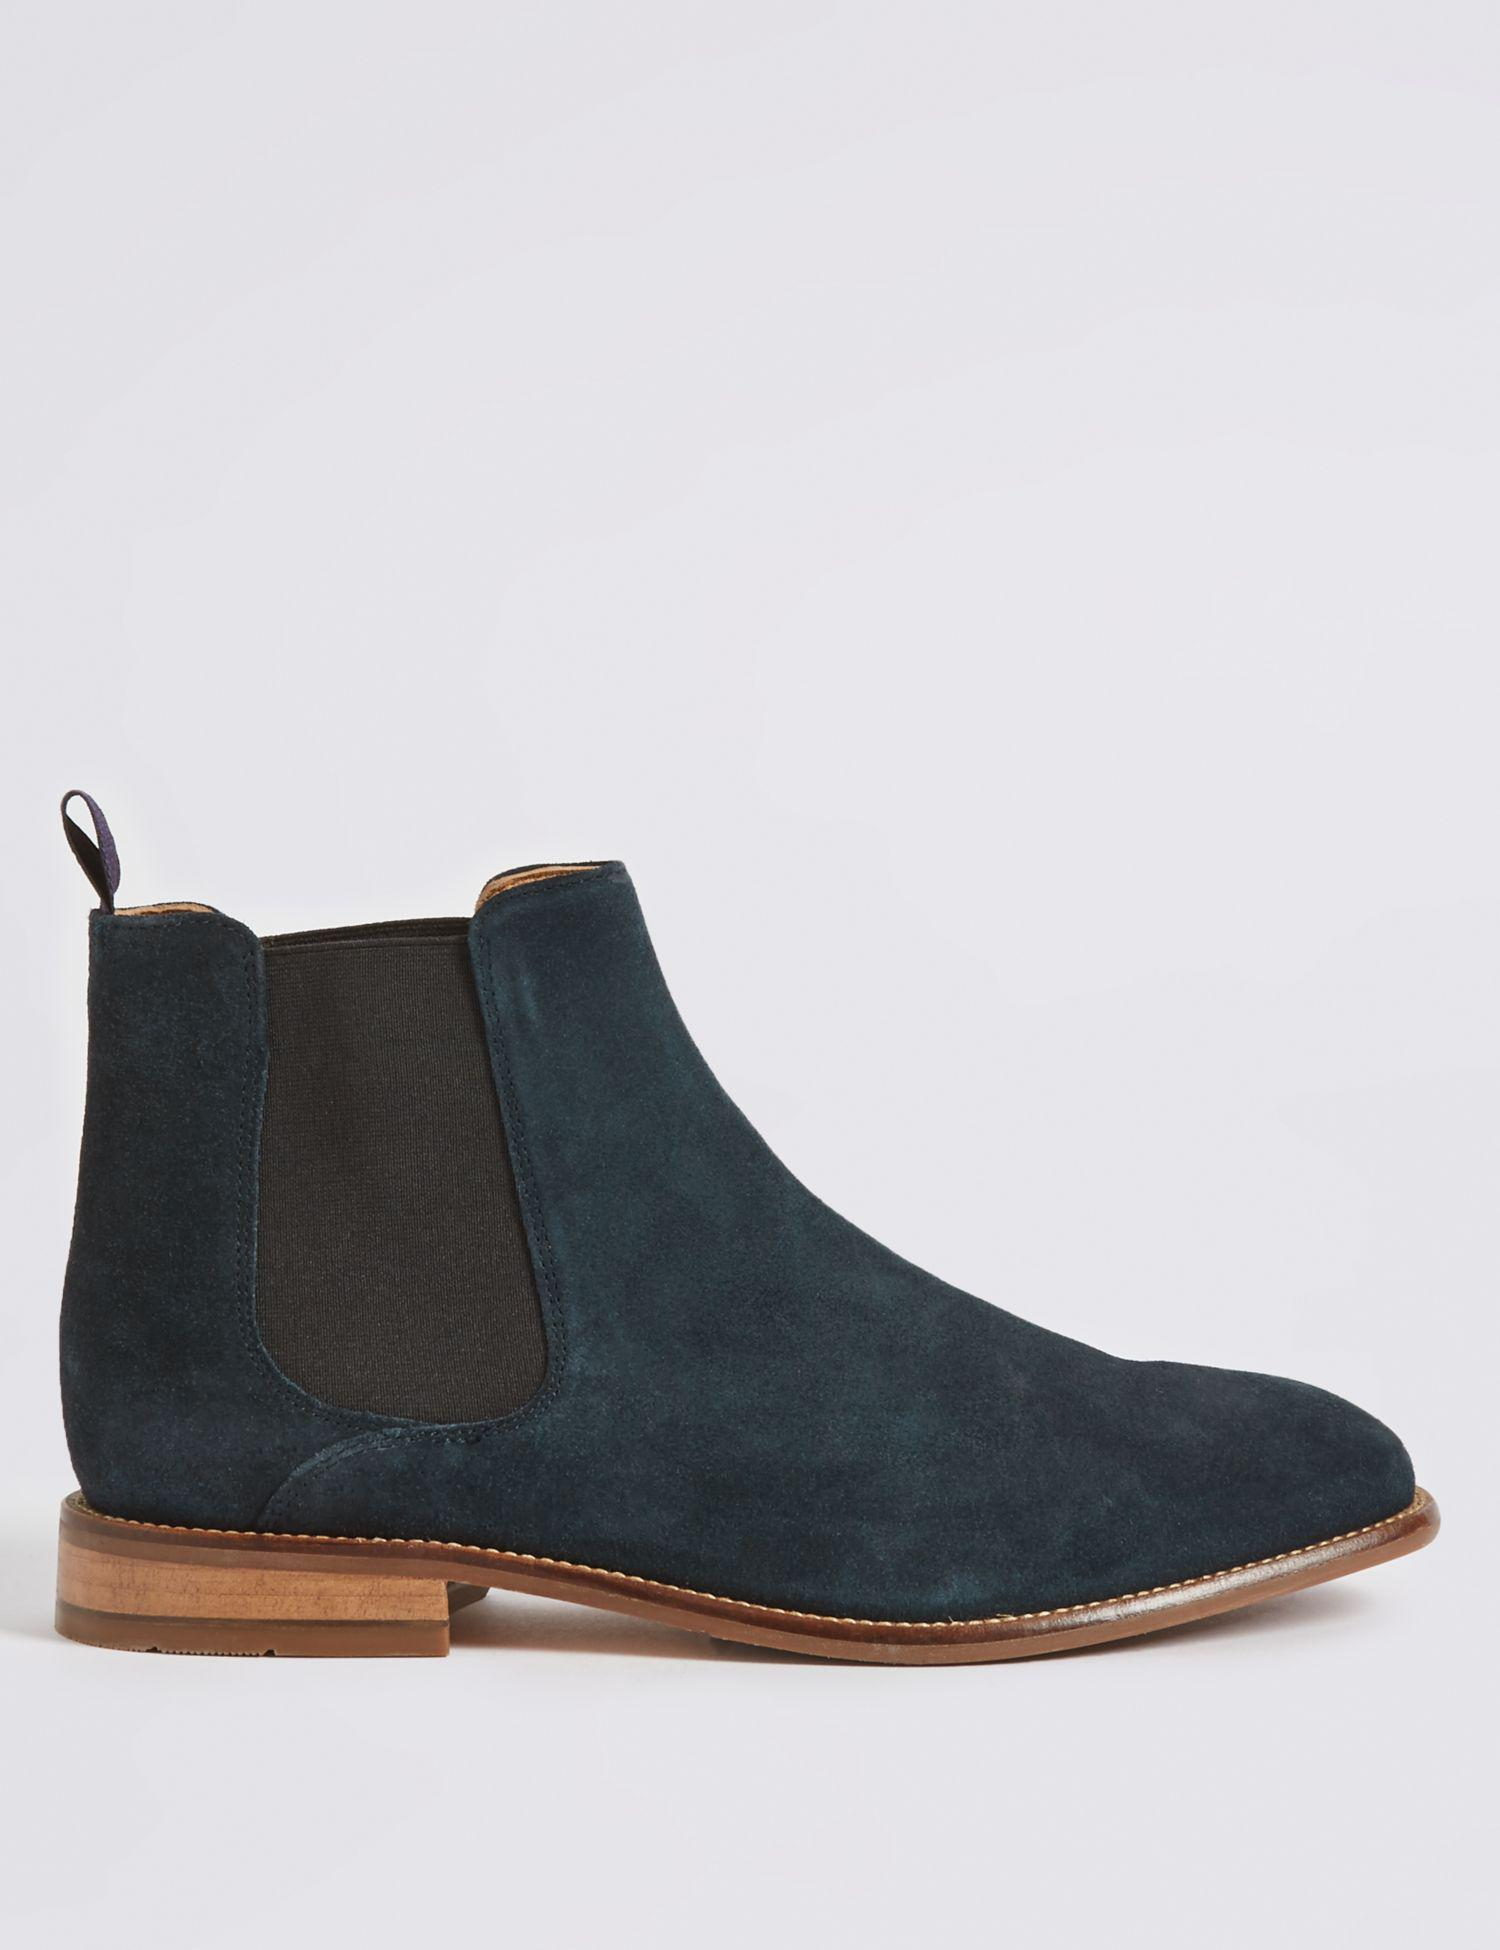 90ba4a701e812 Marks & Spencer Suede Chelsea Boots in Blue for Men - Lyst